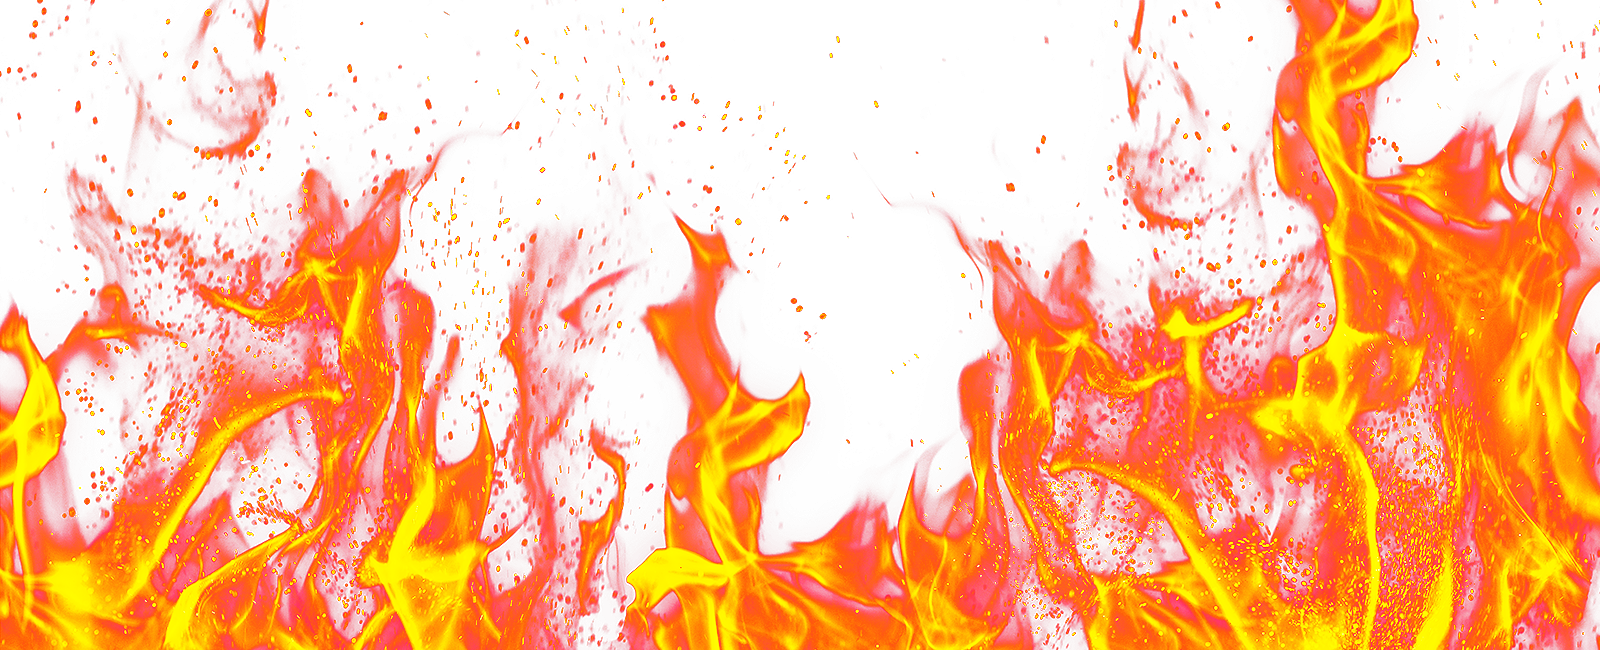 Fire Flame Png Pictures Download 6804